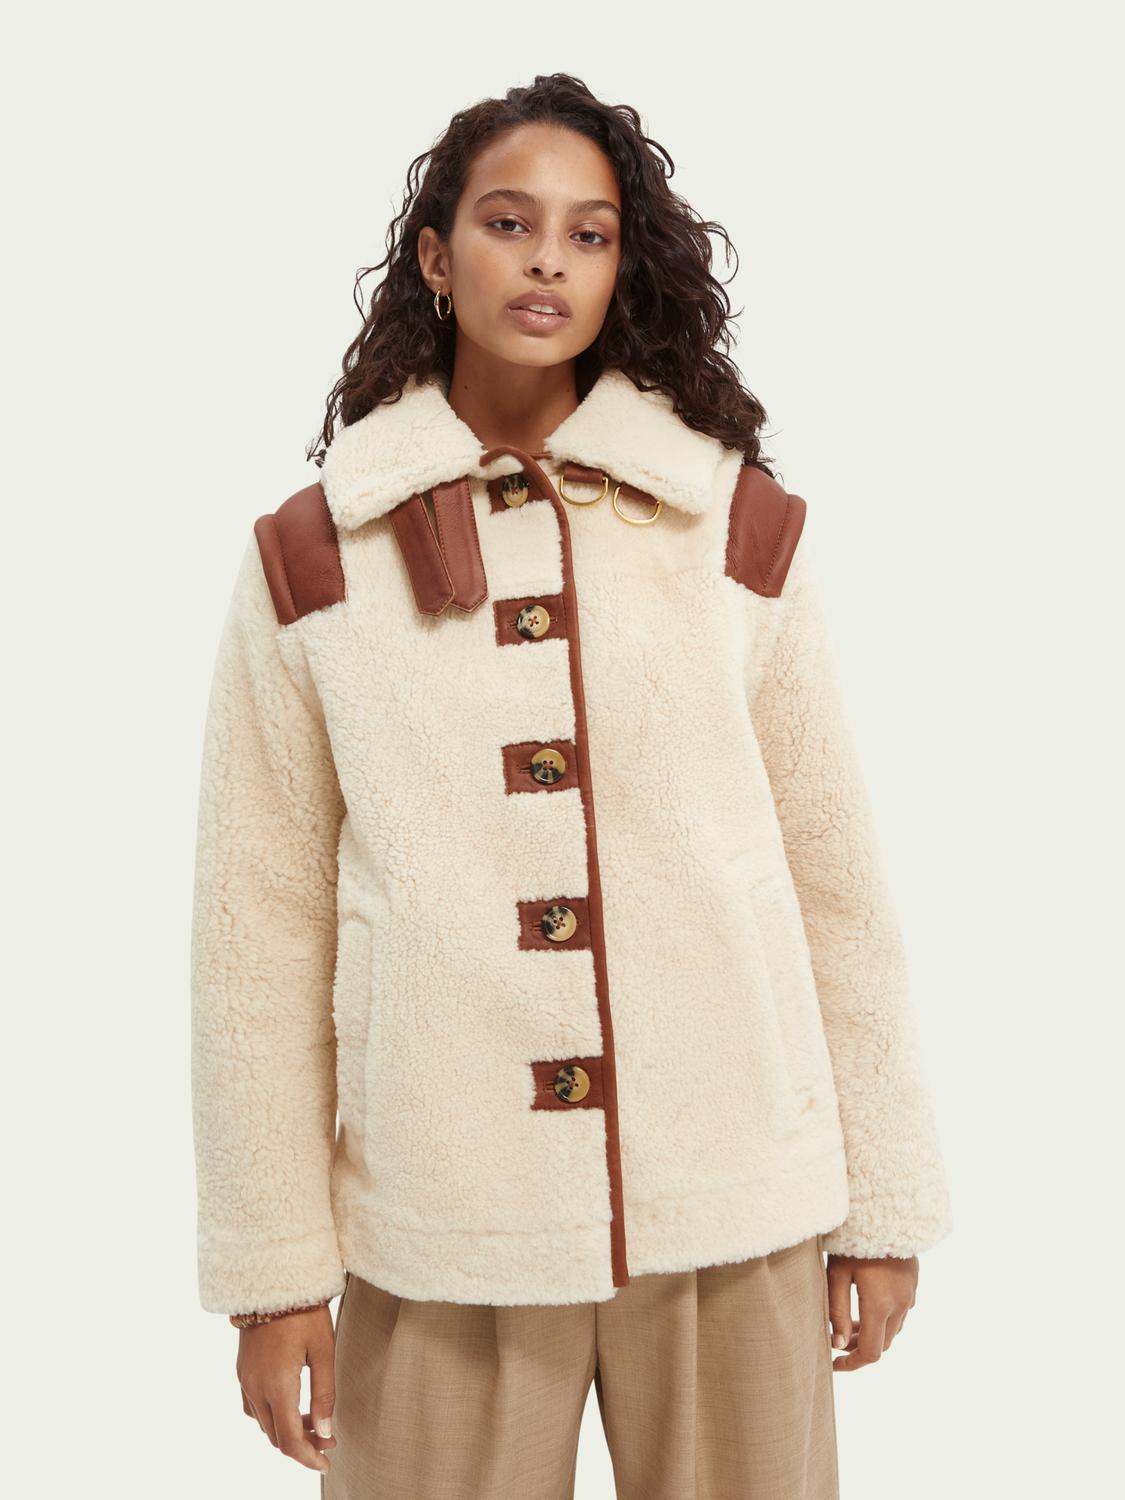 Single-breasted shearling jacket with detachable sleeves